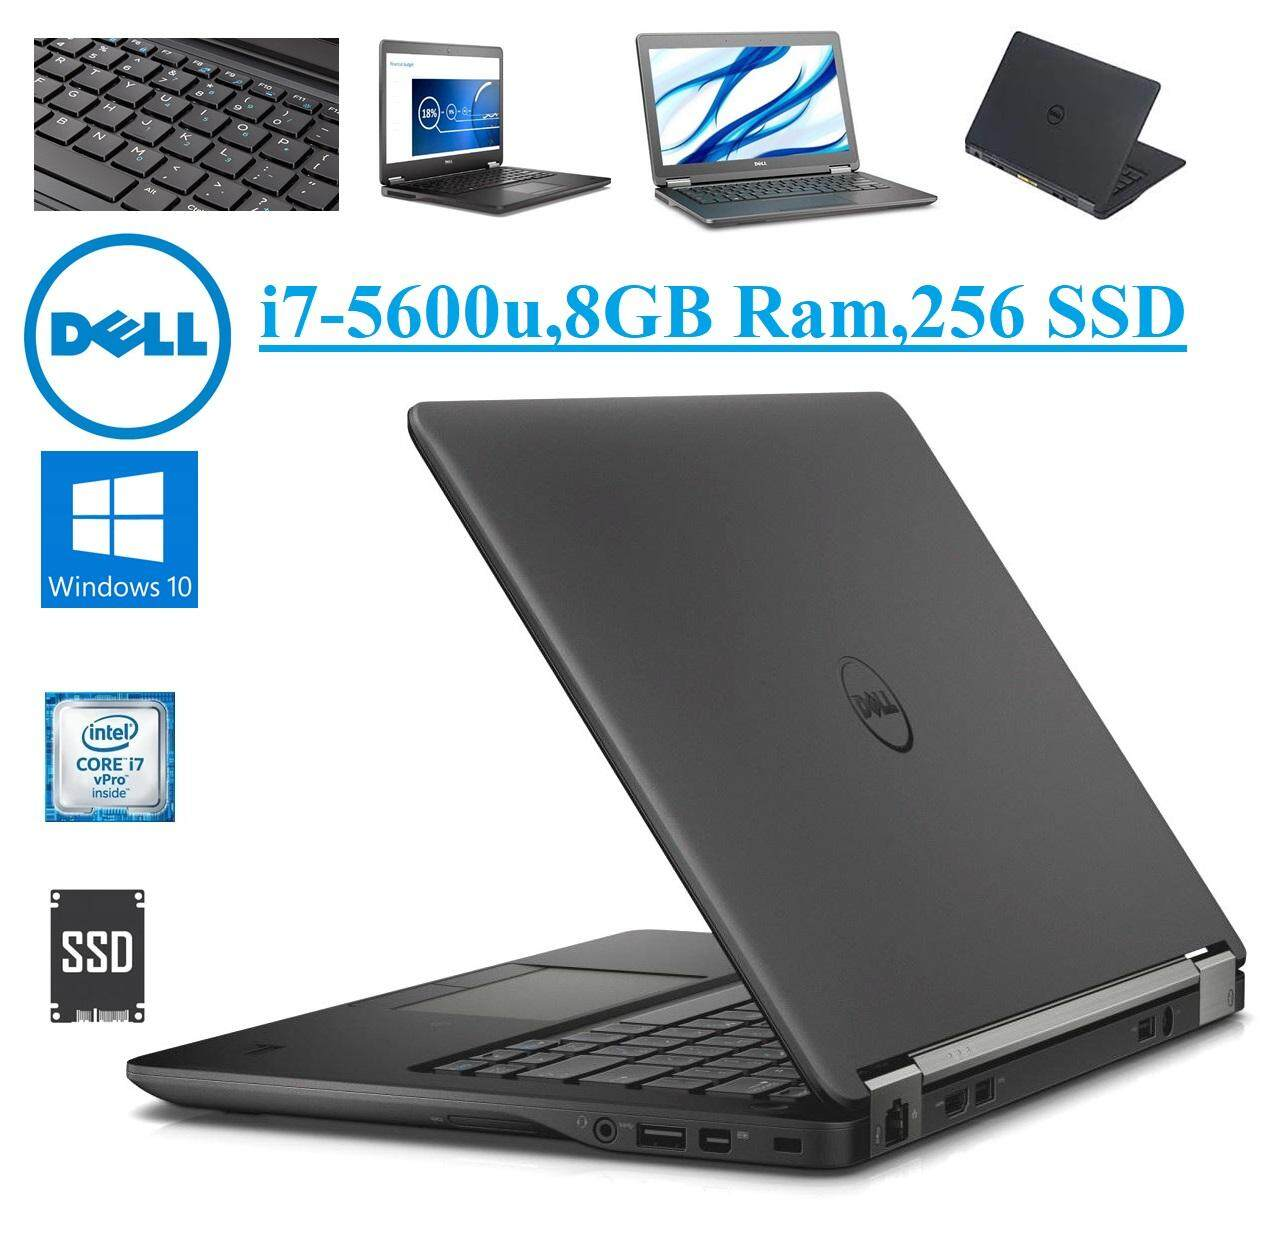 DELL Latitude E7250 i7-5600u-Ram 8GB DDR3L-256 GB SSD-12.5 HD Screen - Win10Pro Malaysia